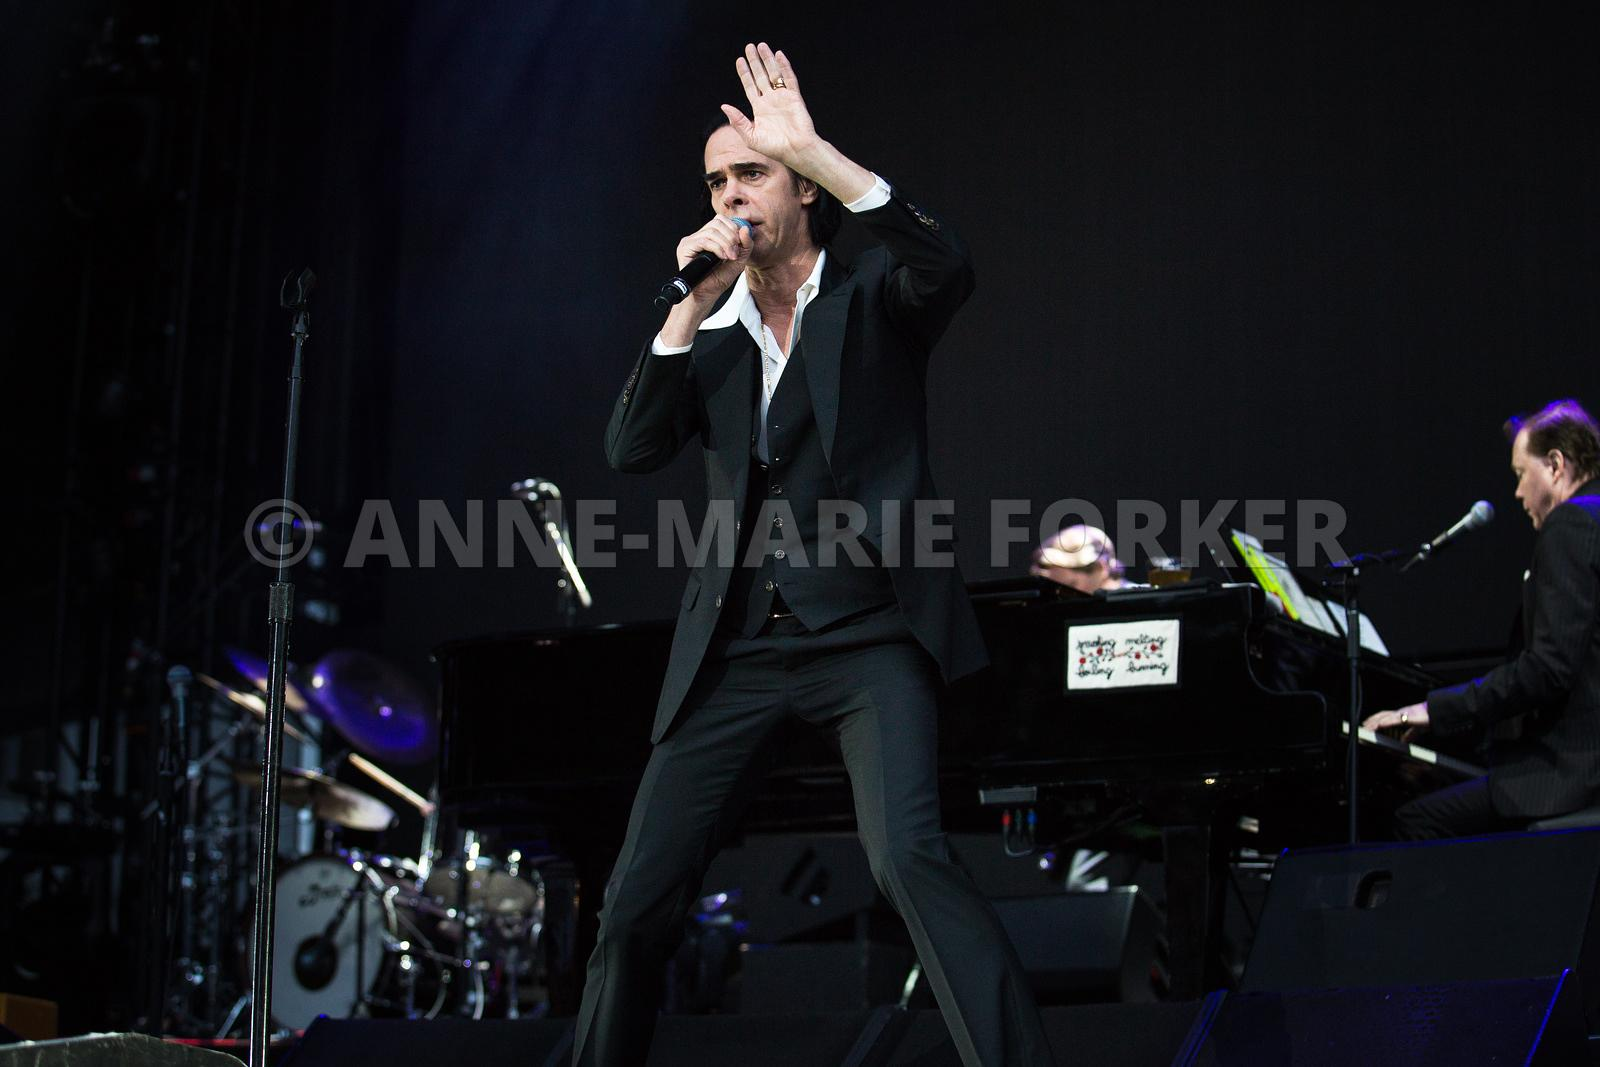 Nick_Cave_-_AM_Forker-8394